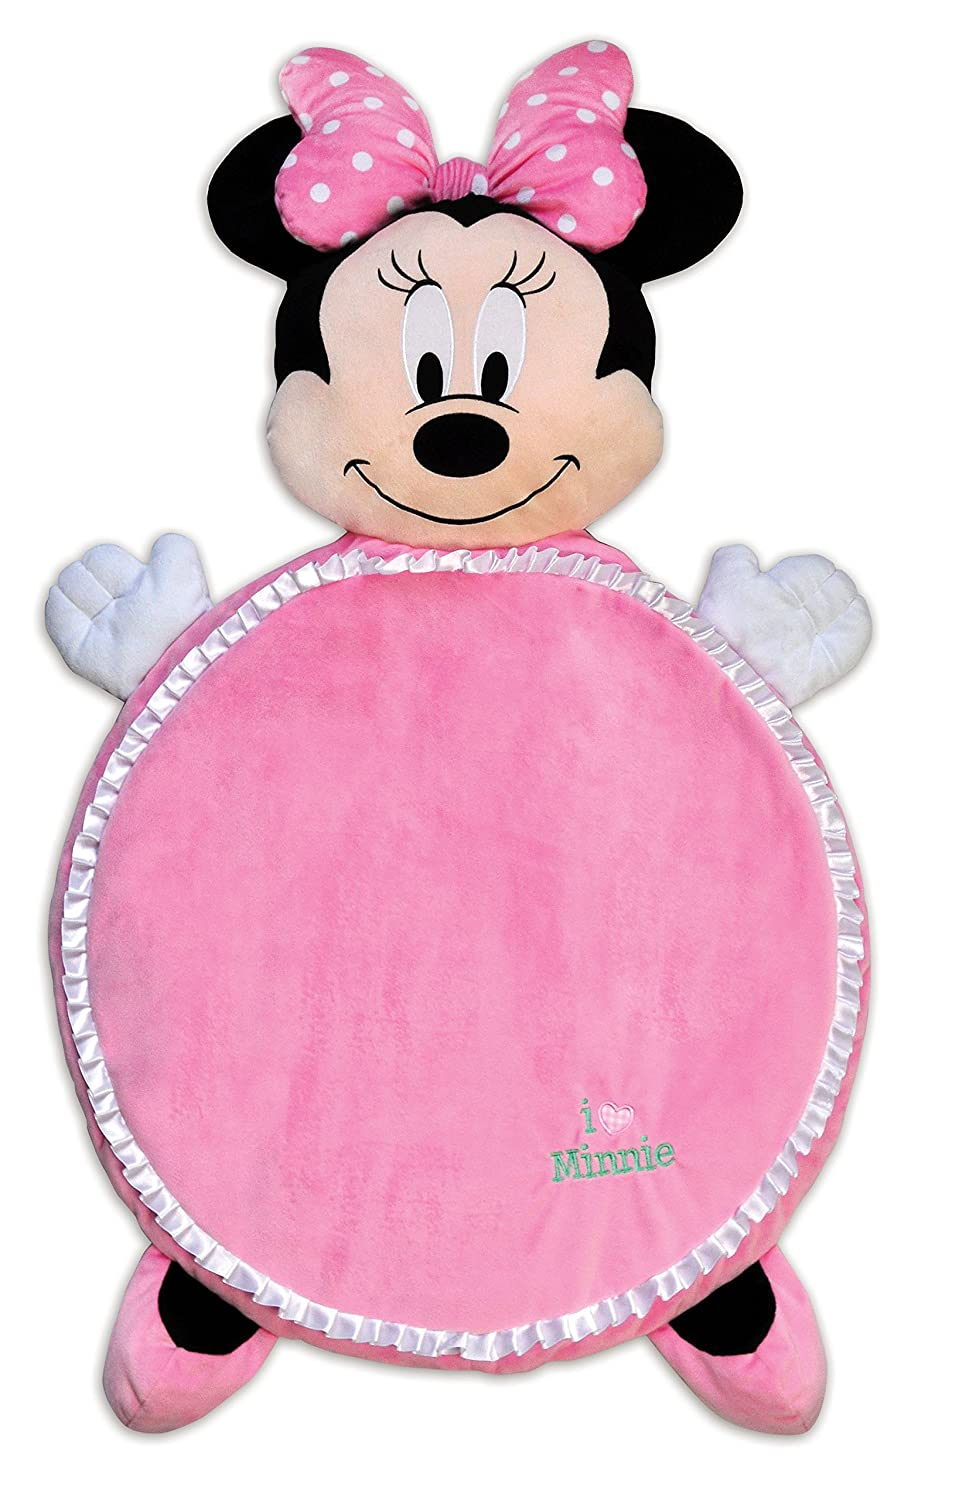 KIDS PREFERRED Disney Baby Minnie Mouse Plush Playmat, 25